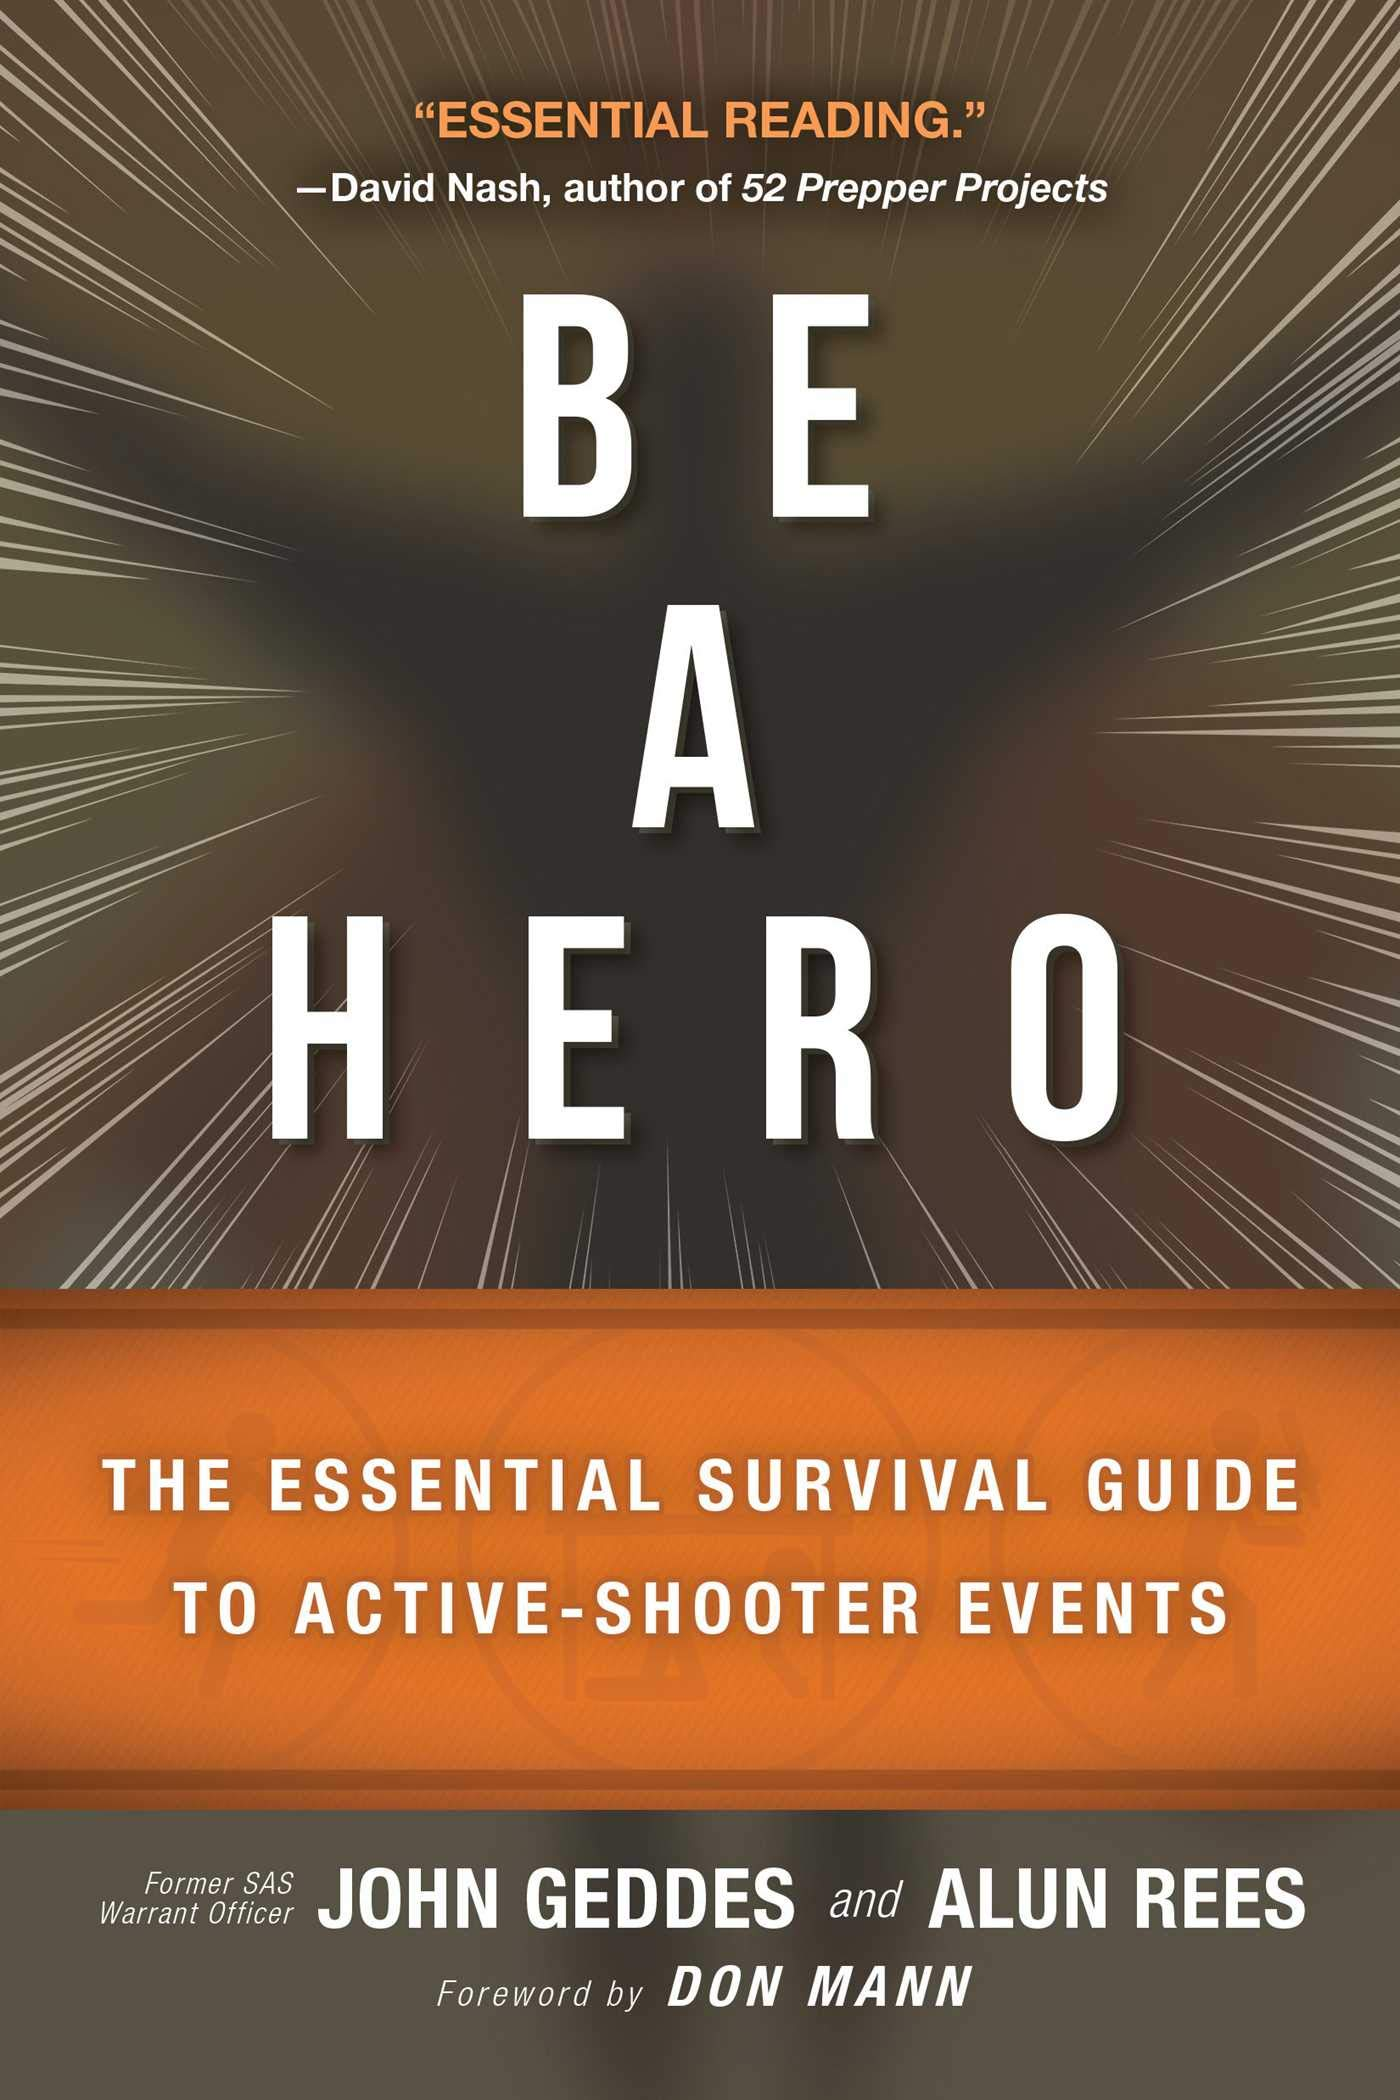 Be a Hero: The Essential Survival Guide to Active-Shooter Events Paperback – 24 Aug 2017